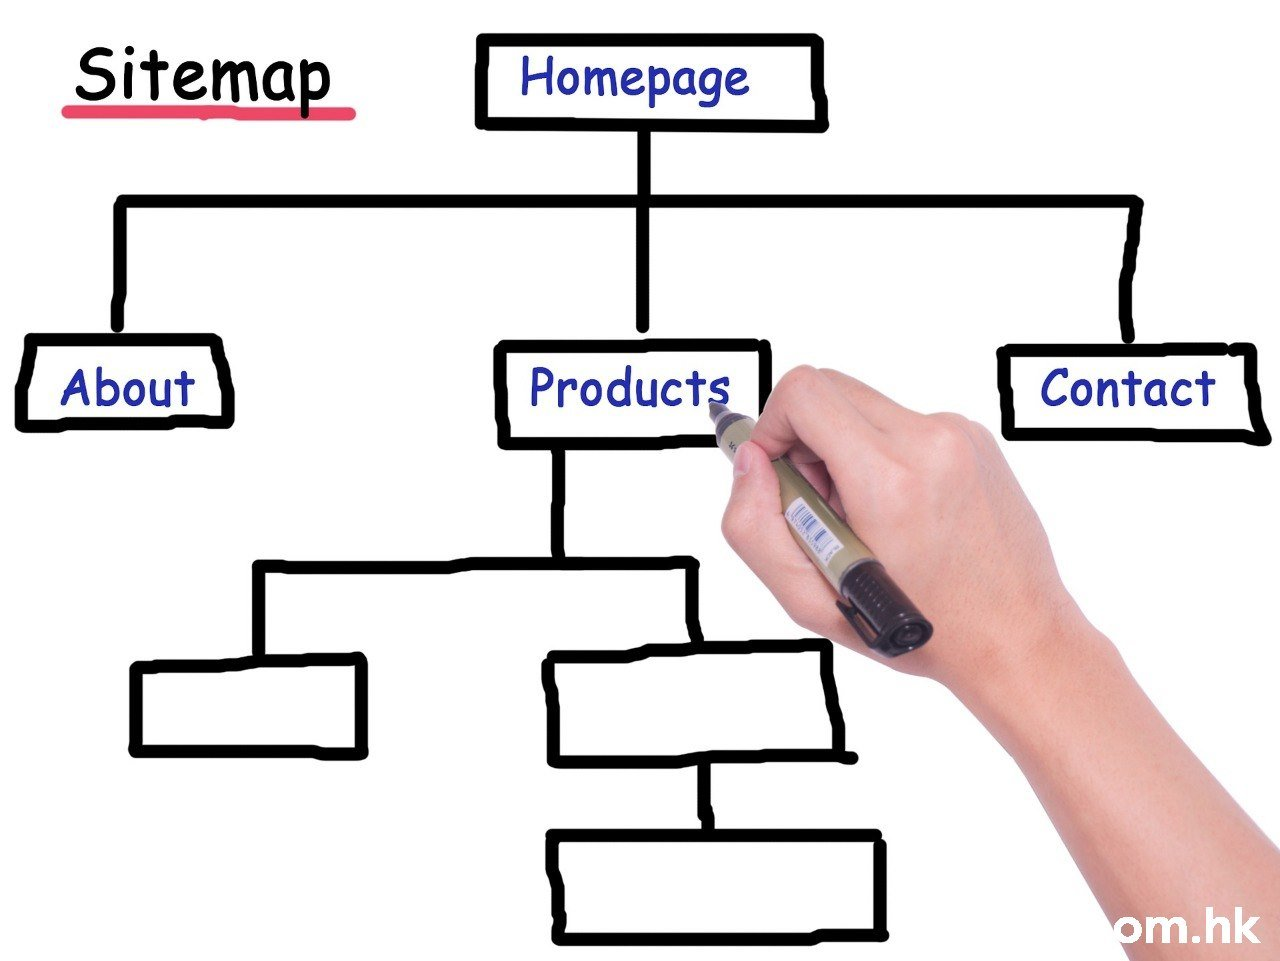 Sitemap Homepage Products About Contact om.hk  Diagram,Text,Parallel,Finger,